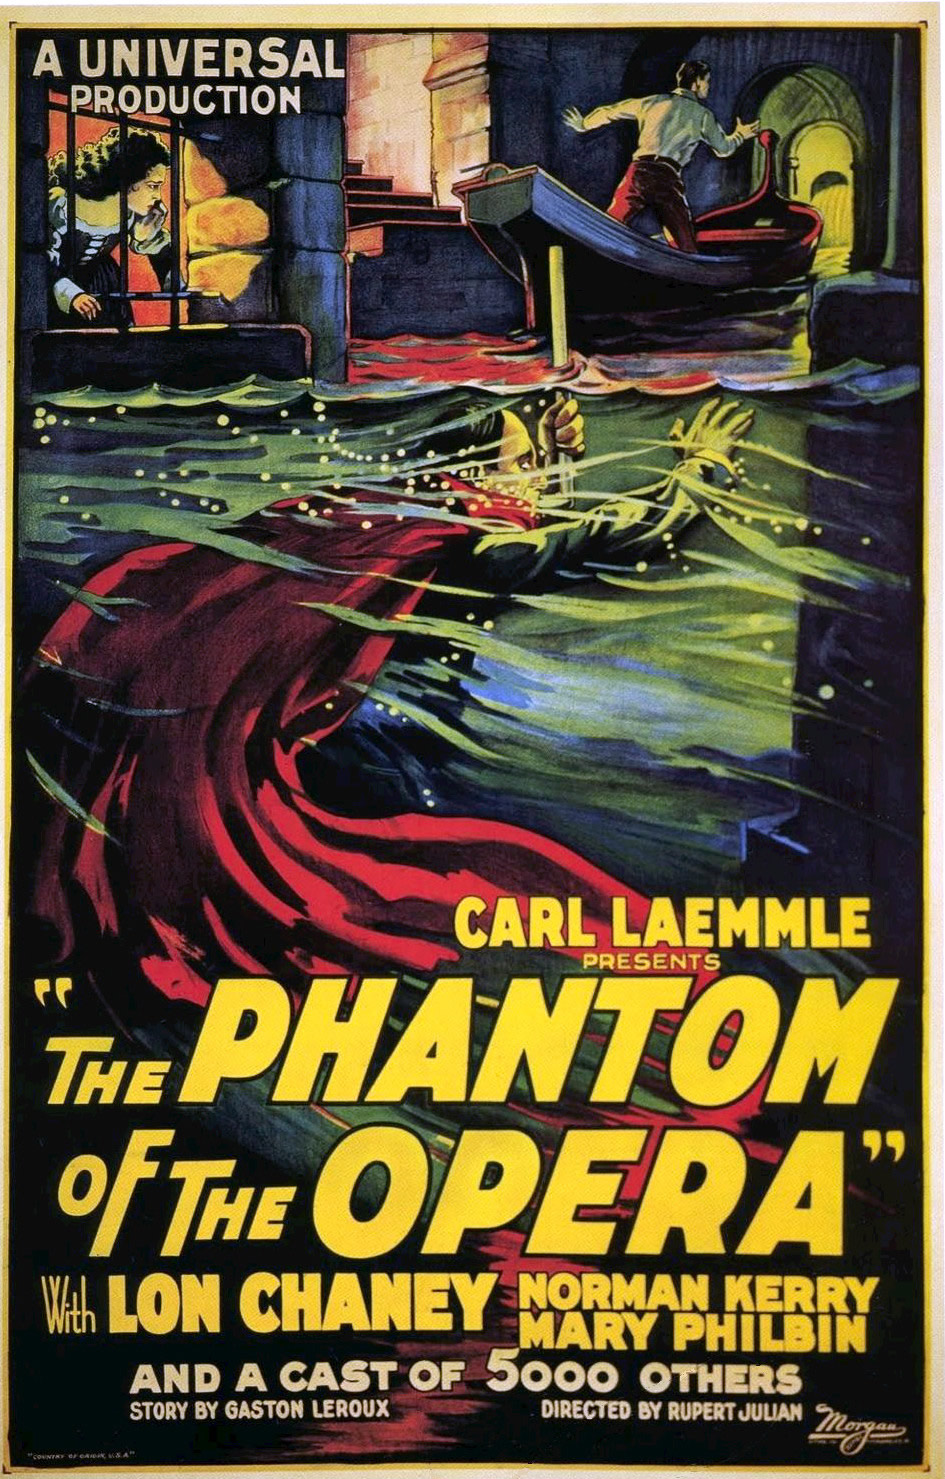 38 - The Phantom of the Opera (1925)